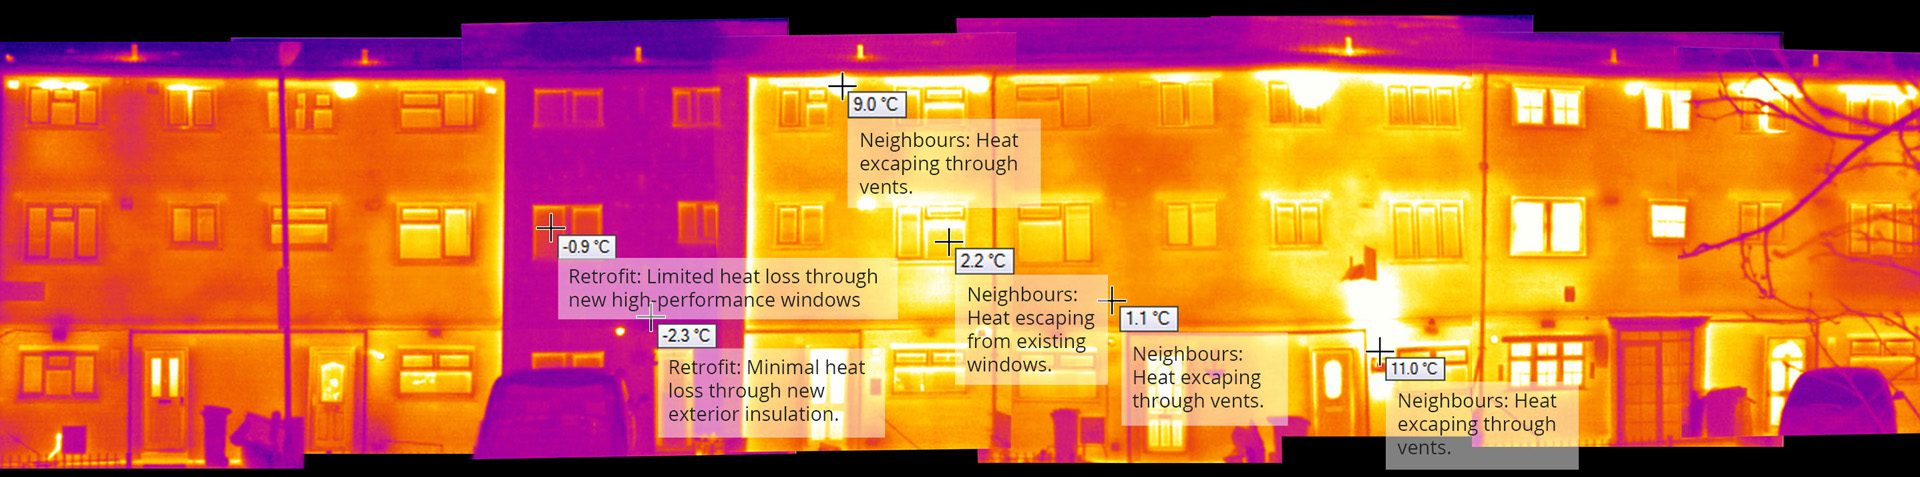 passfield drive thermal image 1b